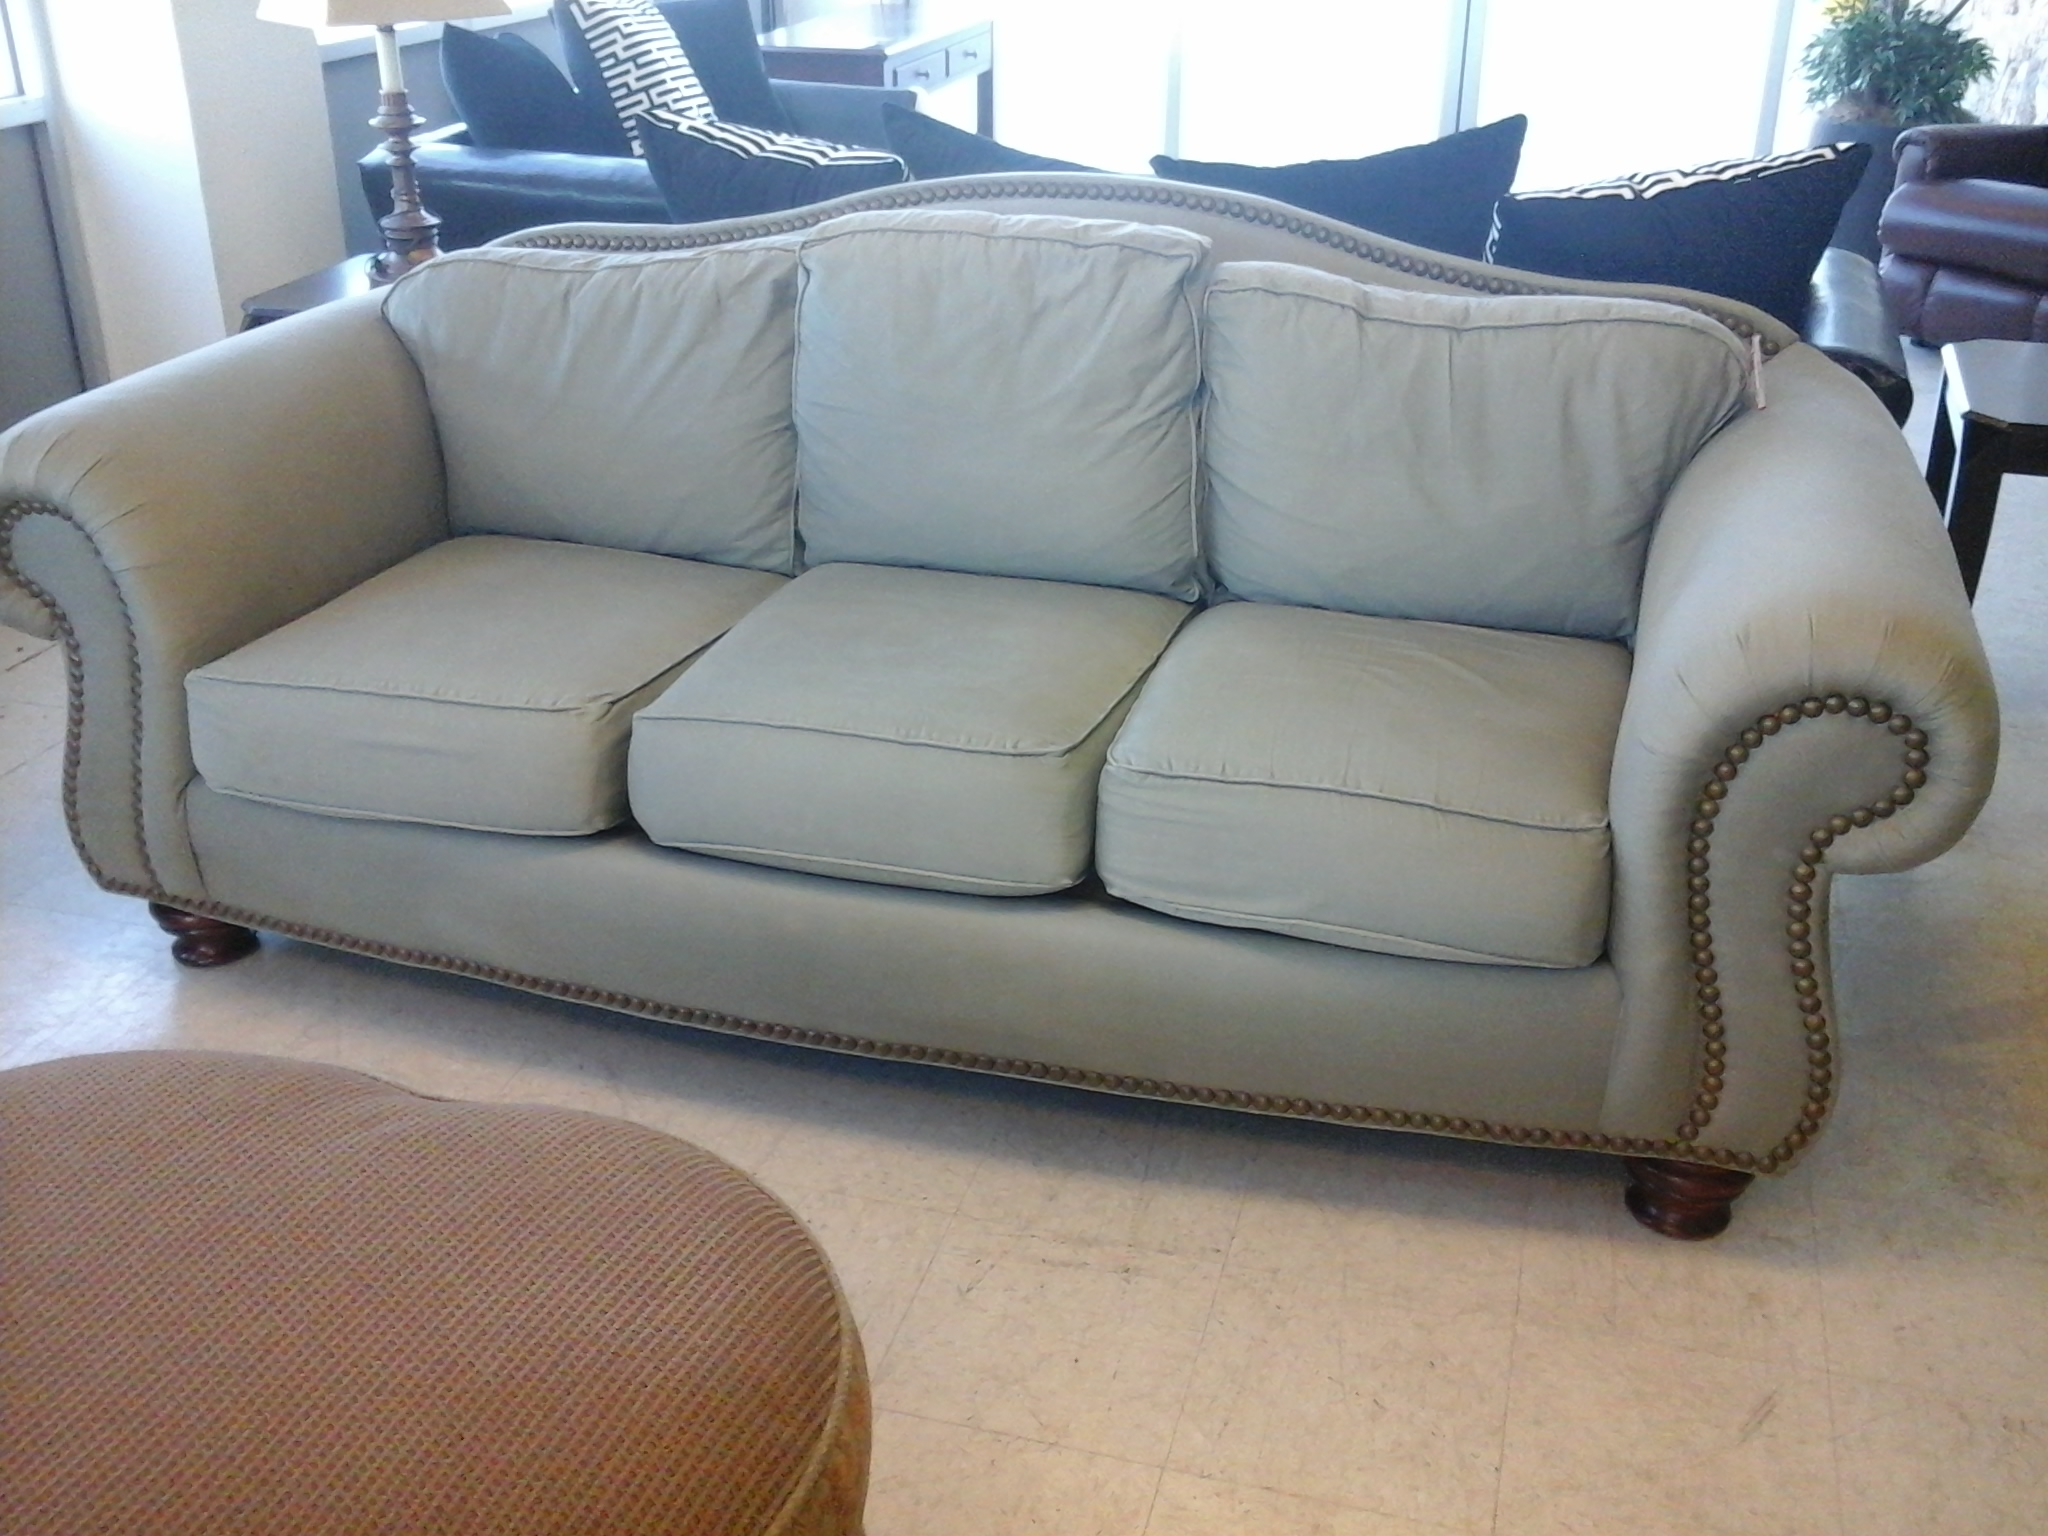 Sofas Center White Upholstered Extra Deep Day Sofa With Glass In Deep Cushion Sofa (Image 15 of 15)